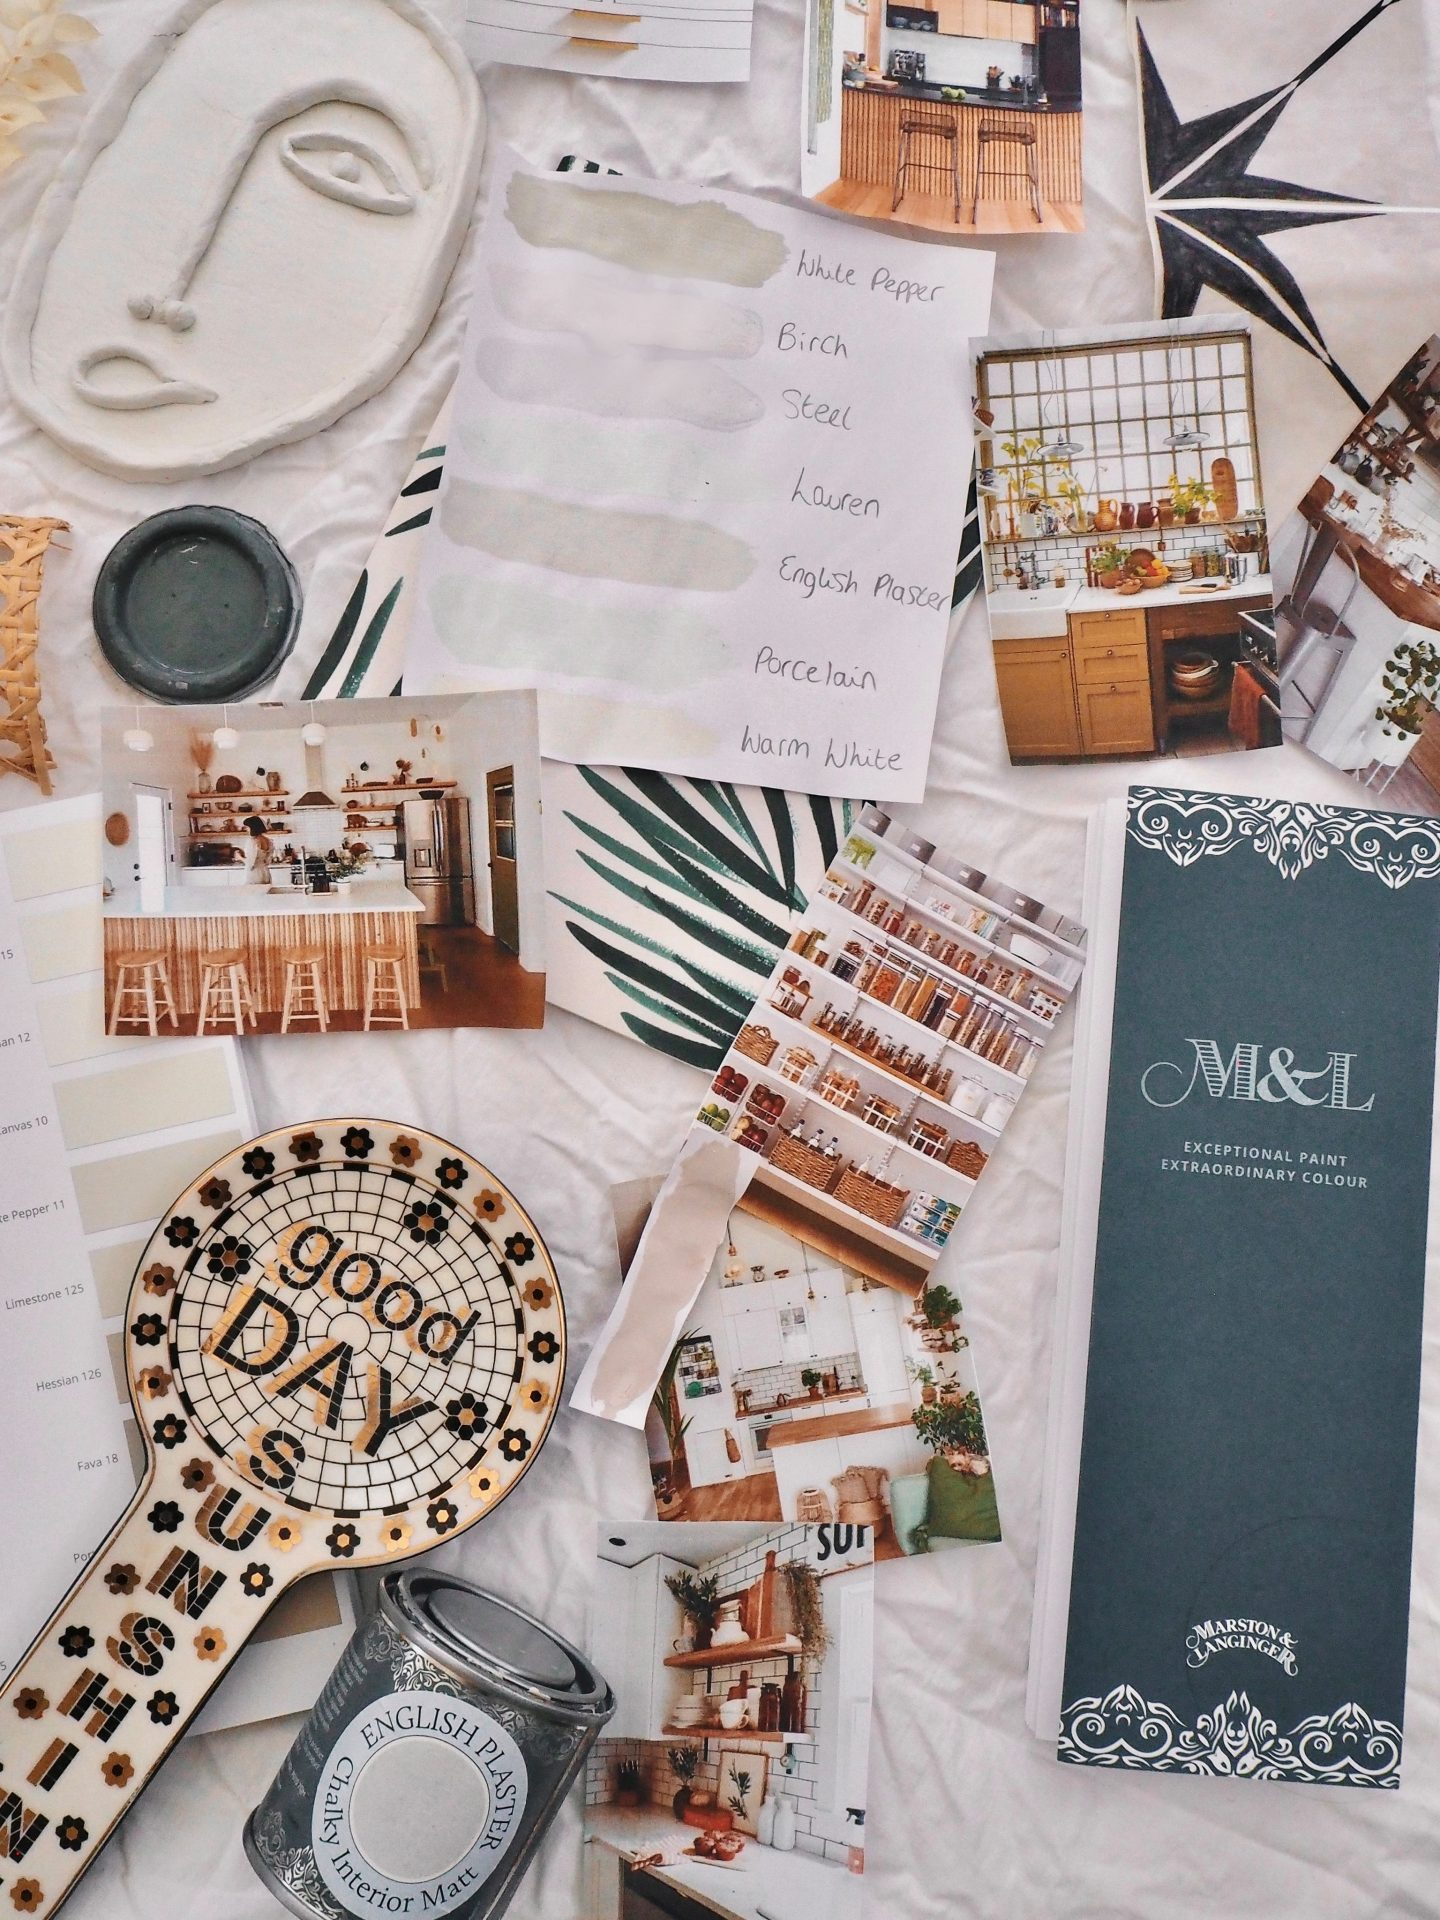 Rental kitchen update mood board, including rattan, crittal, reeded glass and decorative tile stickers